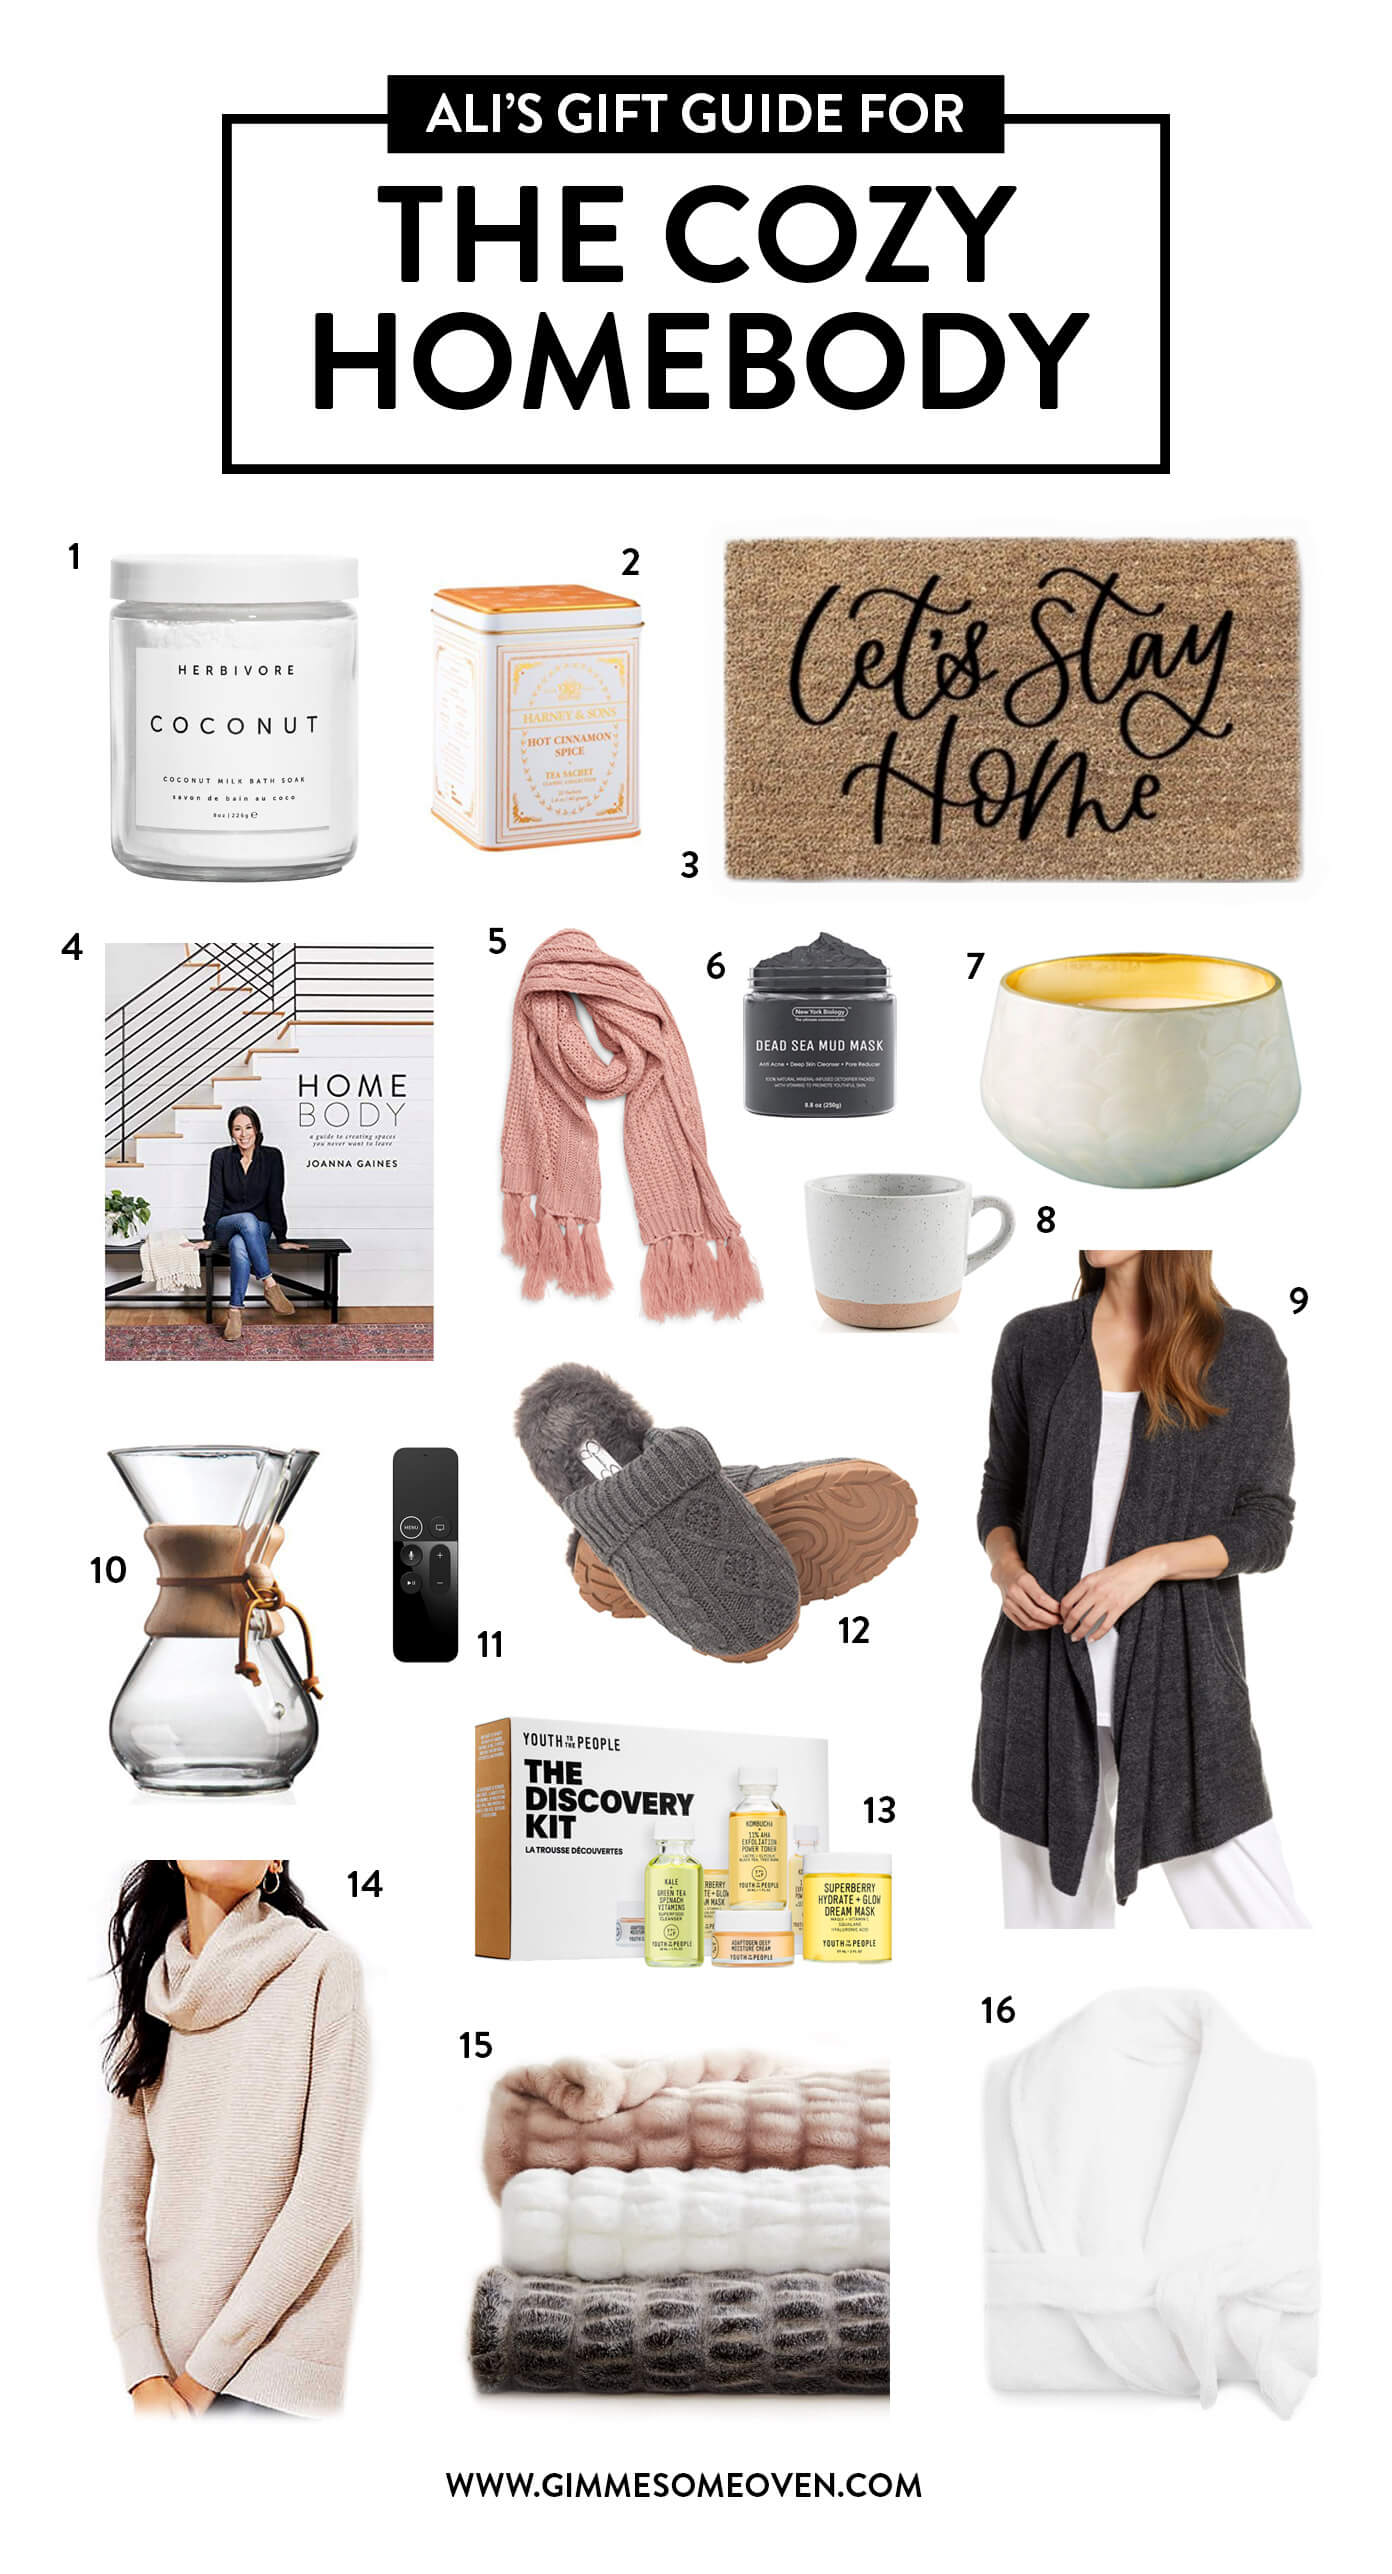 Gift Guide For The Cozy Homebody